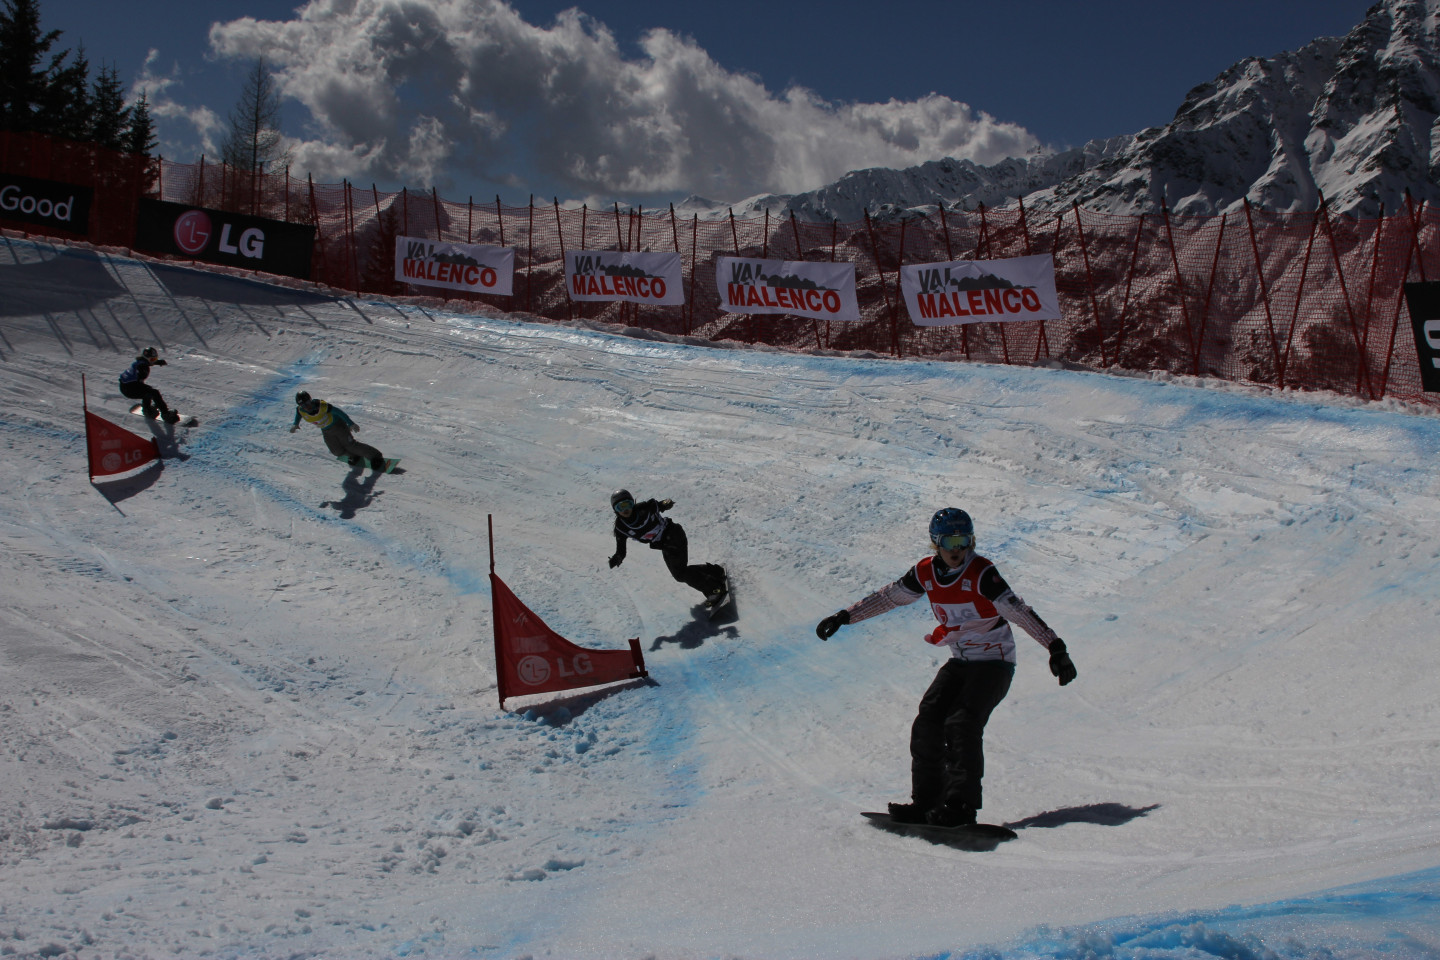 Snowboardcross competition at the Palù Park in Valmalenco